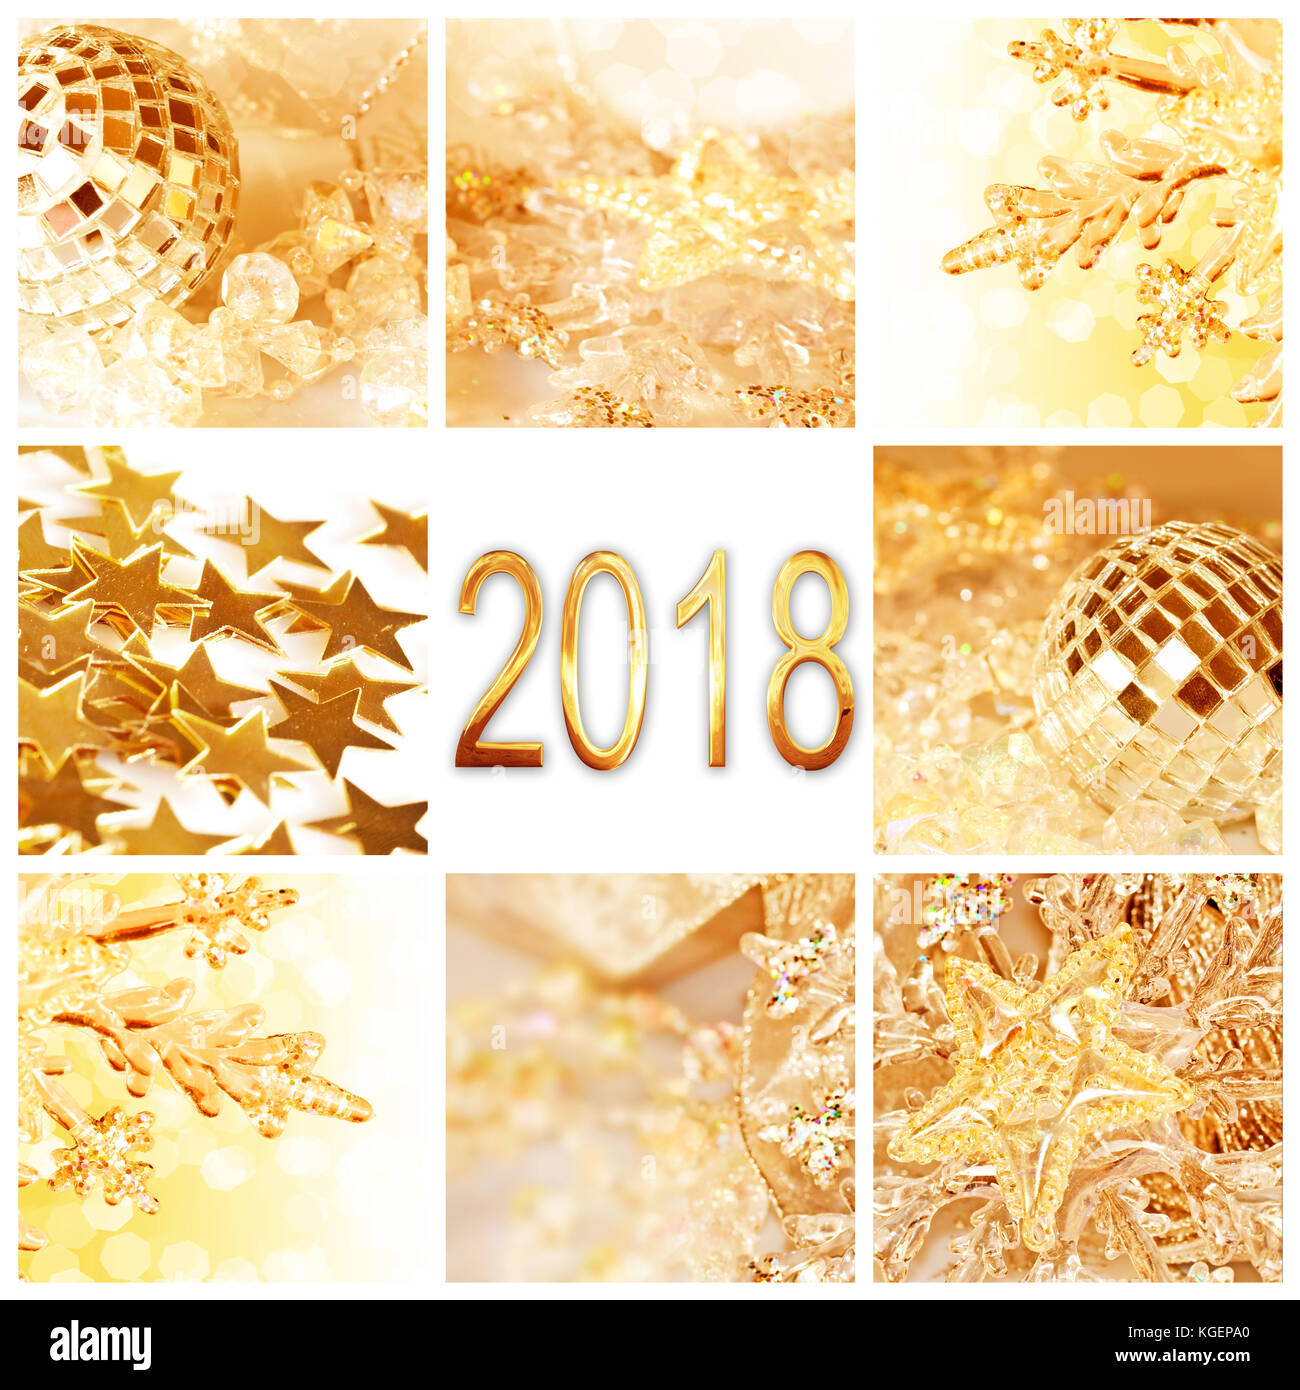 2018 golden christmas ornaments collage square greeting card stock 2018 golden christmas ornaments collage square greeting card m4hsunfo